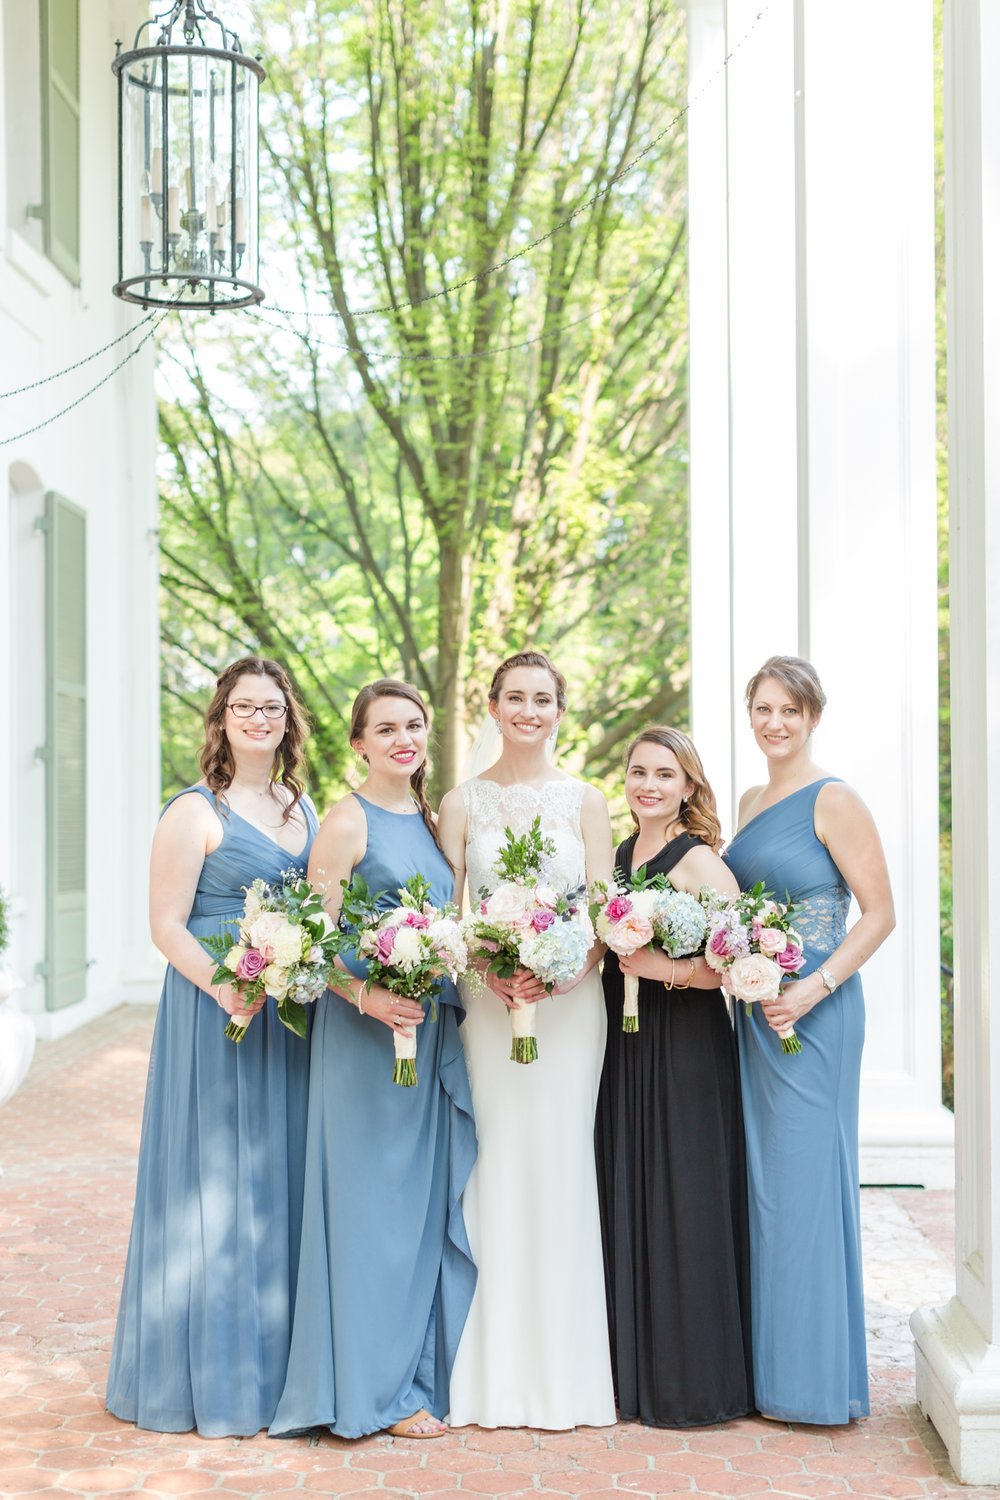 Rose Crowell & Brian Mittereder Wedding HIGHLIGHTS-193_baltimore-maryland-wedding-photographer-grey-rock-mansion-wedding-anna-grace-photography-photo.jpg